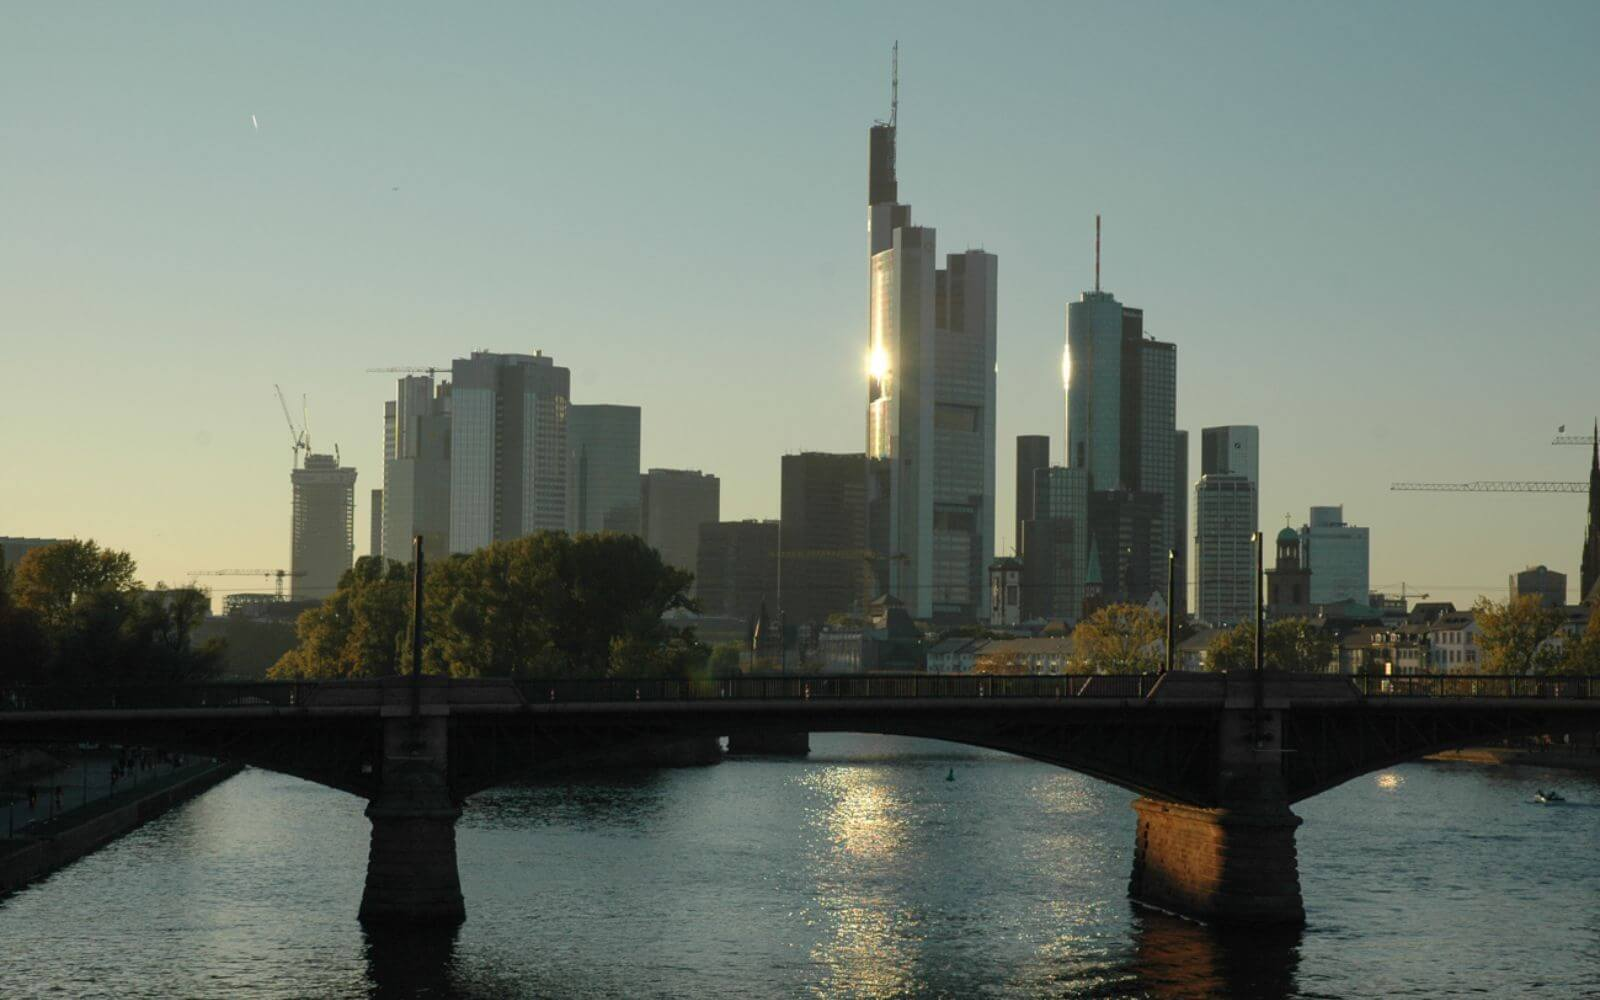 Frankfurt City Round Trip Bus Tour